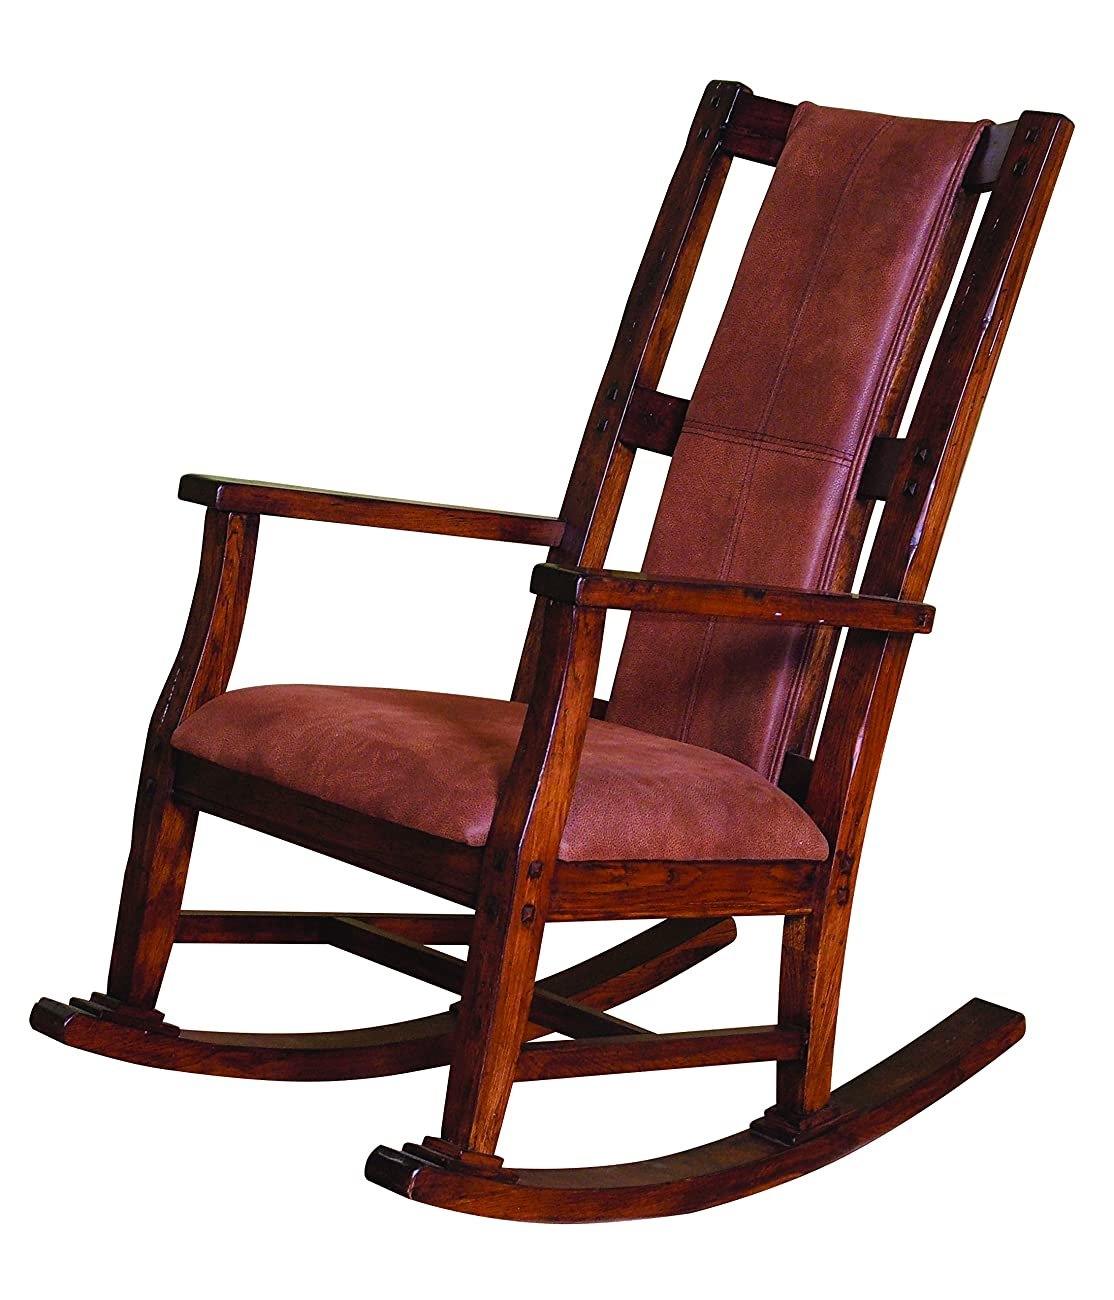 Sunny Designs 1935DC Santa Fe Rocker with T-Fabric Seat and Back, Dark Chocolate Finish 0